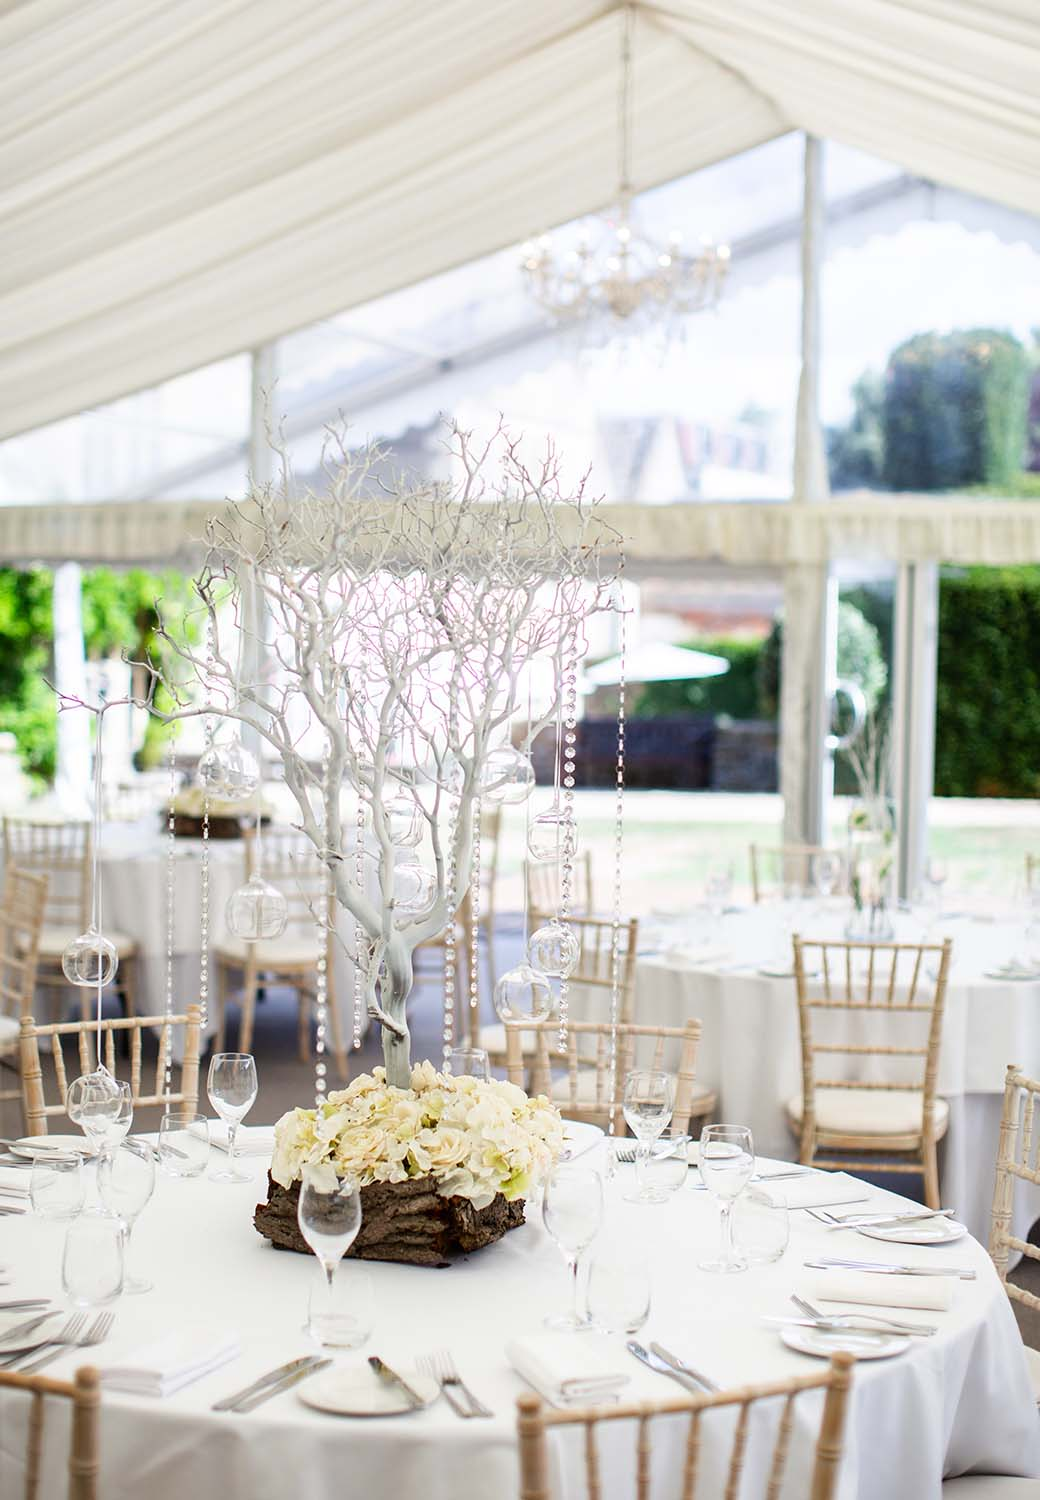 Marquee Weddings at The Greenway Hotel and Spa